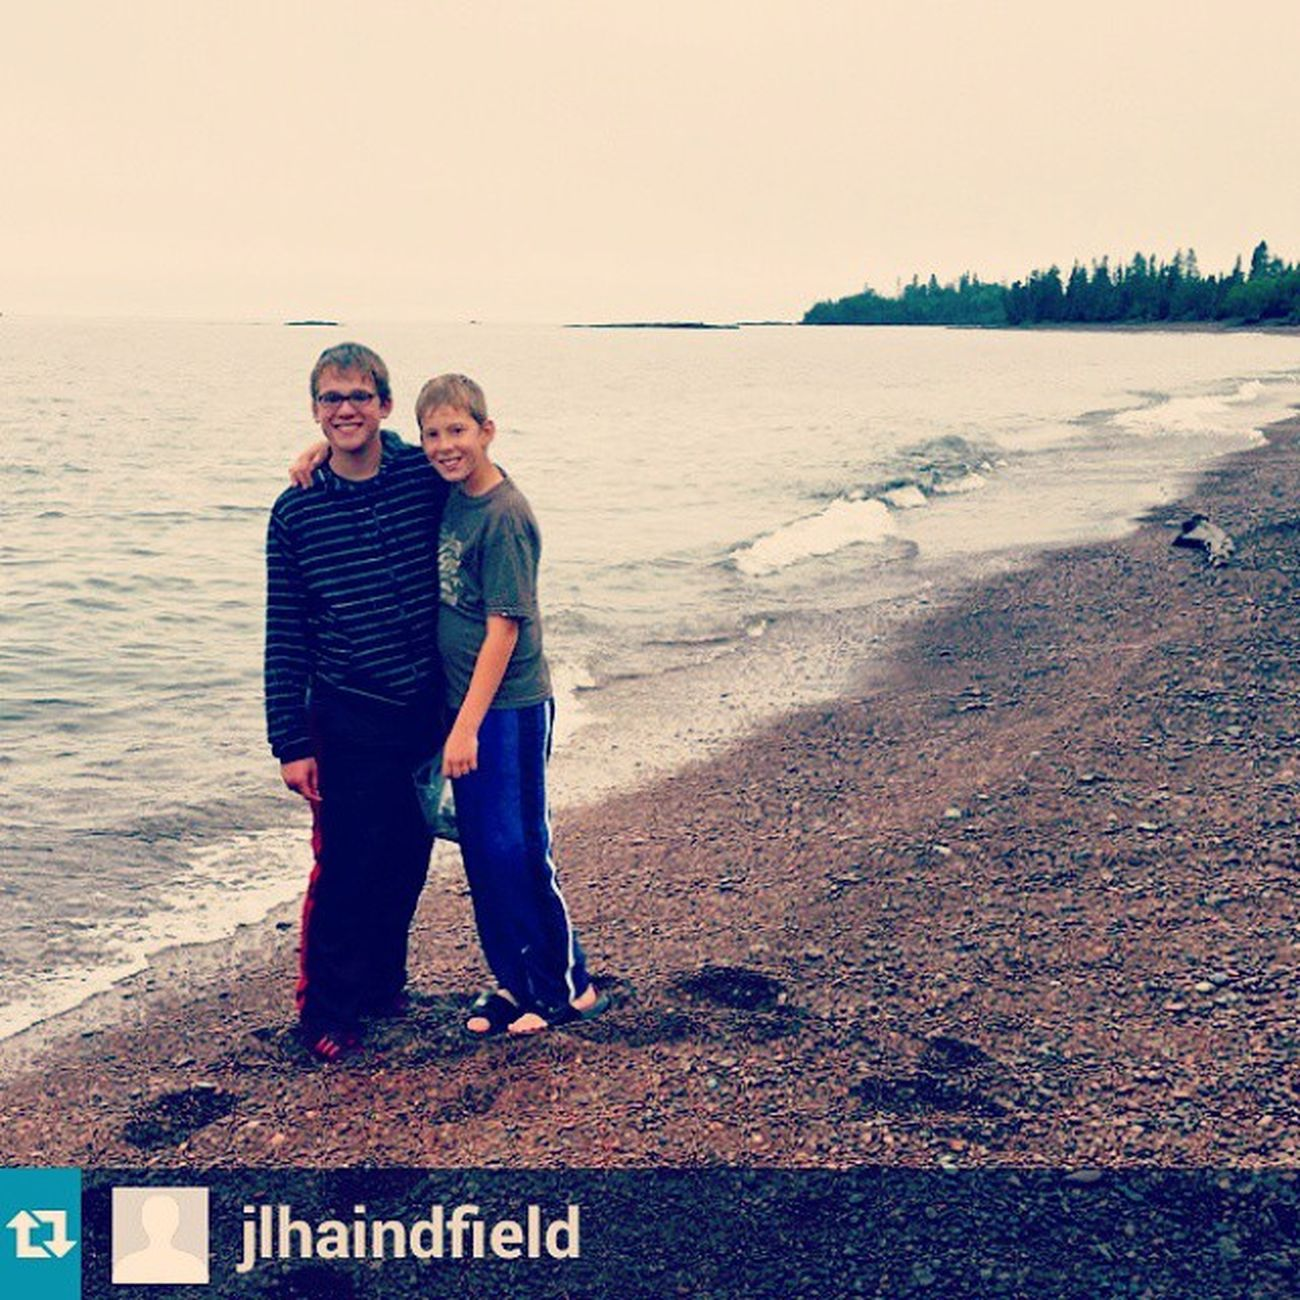 Repost from @jlhaindfield with @repostapp — Looking for agates on the North Shore